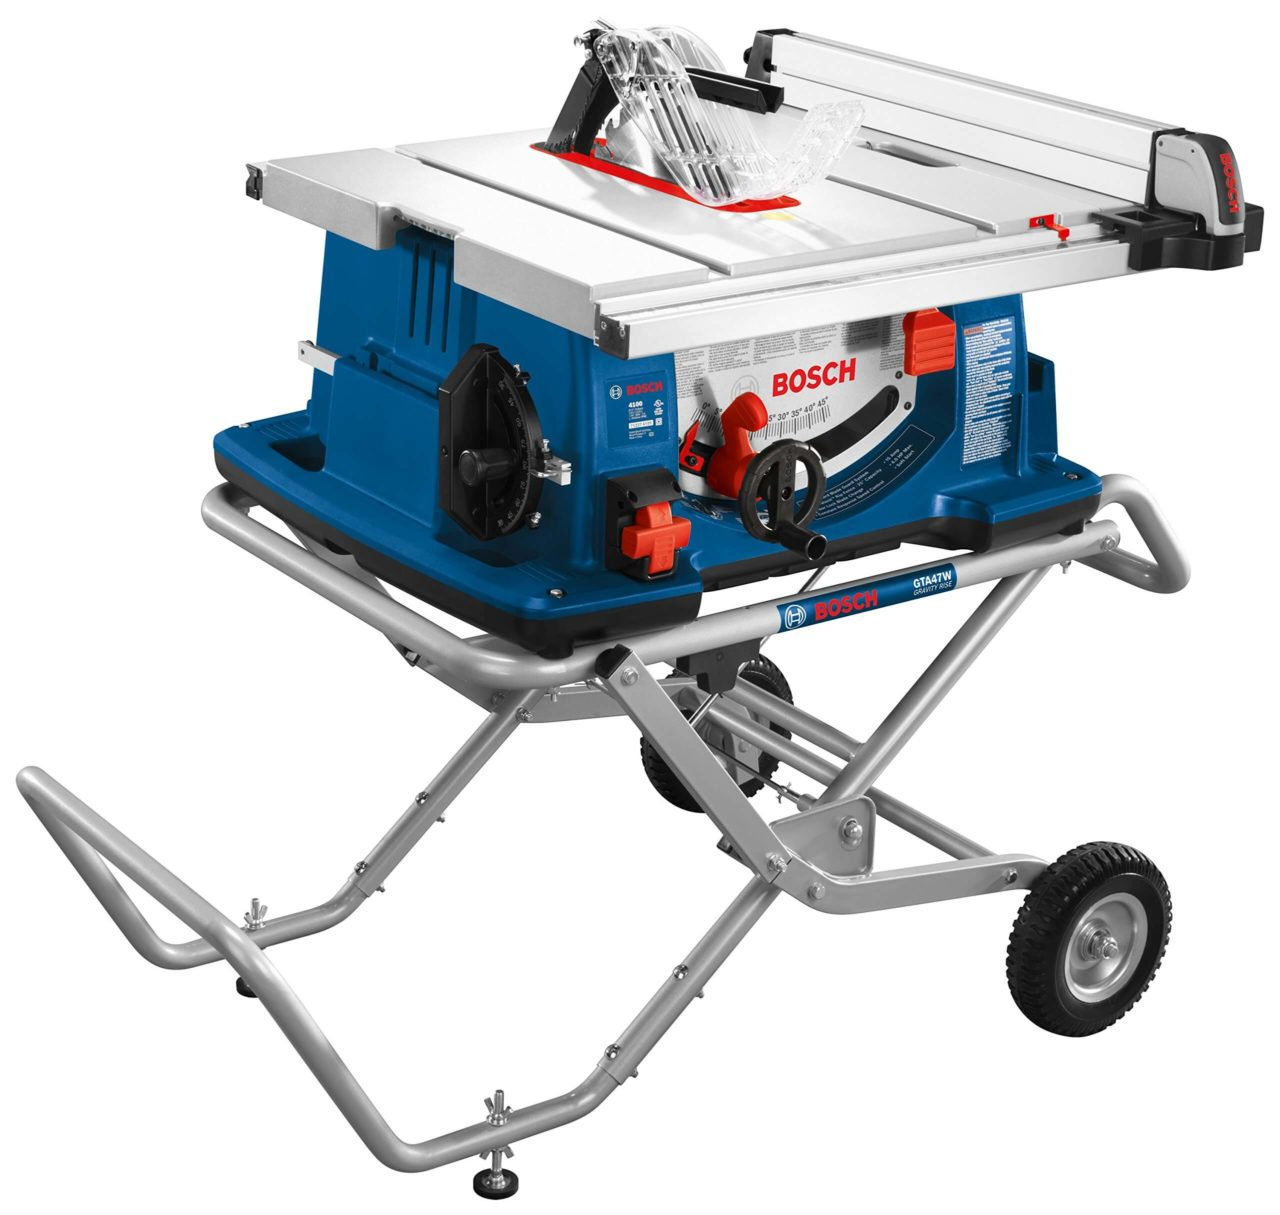 Bosch Power Tools 4100-10 - Best Jobsite Table Saw for Dado Cuts